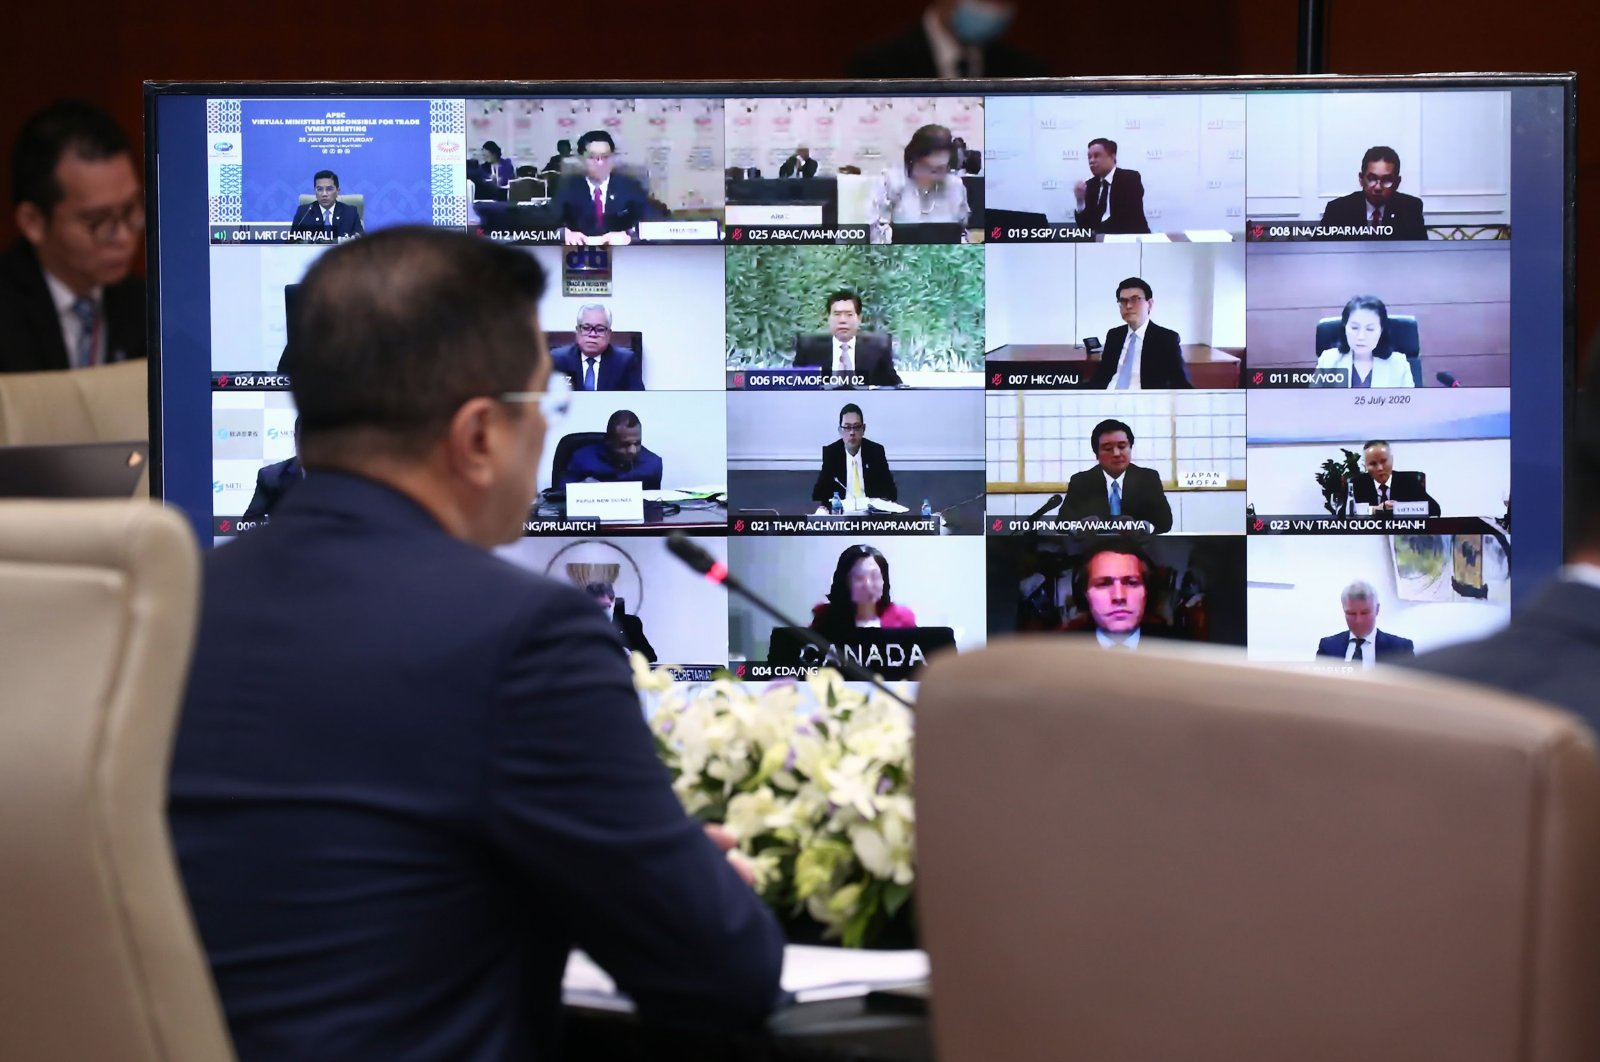 Mohamed Azmin Ali (L), Malaysia's Minister of International Trade and Industry, speaking before a monitor showing participants in the 2020 APEC Virtual Ministers Responsible for Trade Meeting on the COVID-19 coronavirus crisis in Kuala Lumpur, Malaysia on July 25, 2020. (AFP Photo)